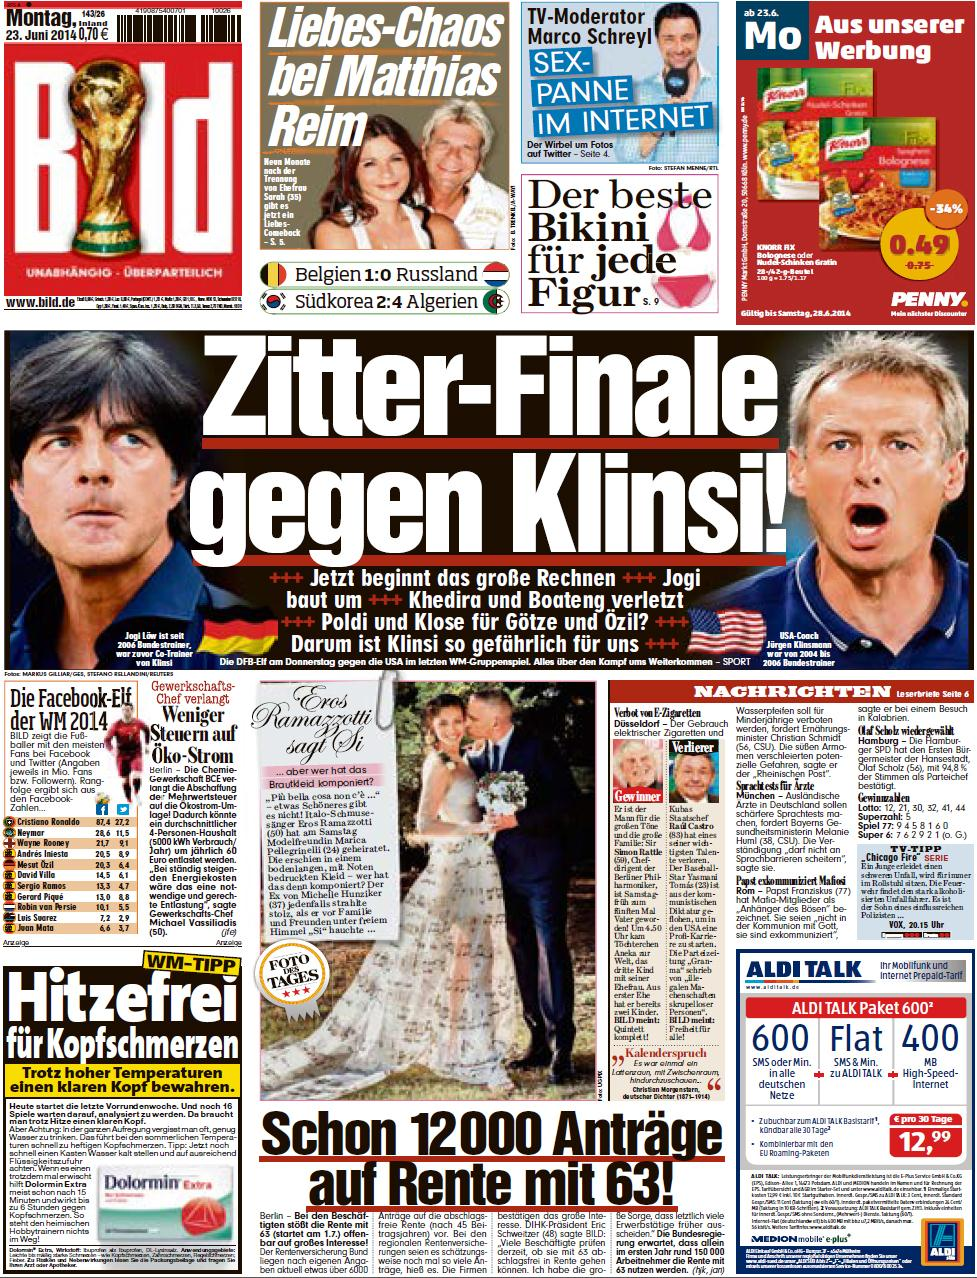 Image: Germany's Bild newspaper featured the headline